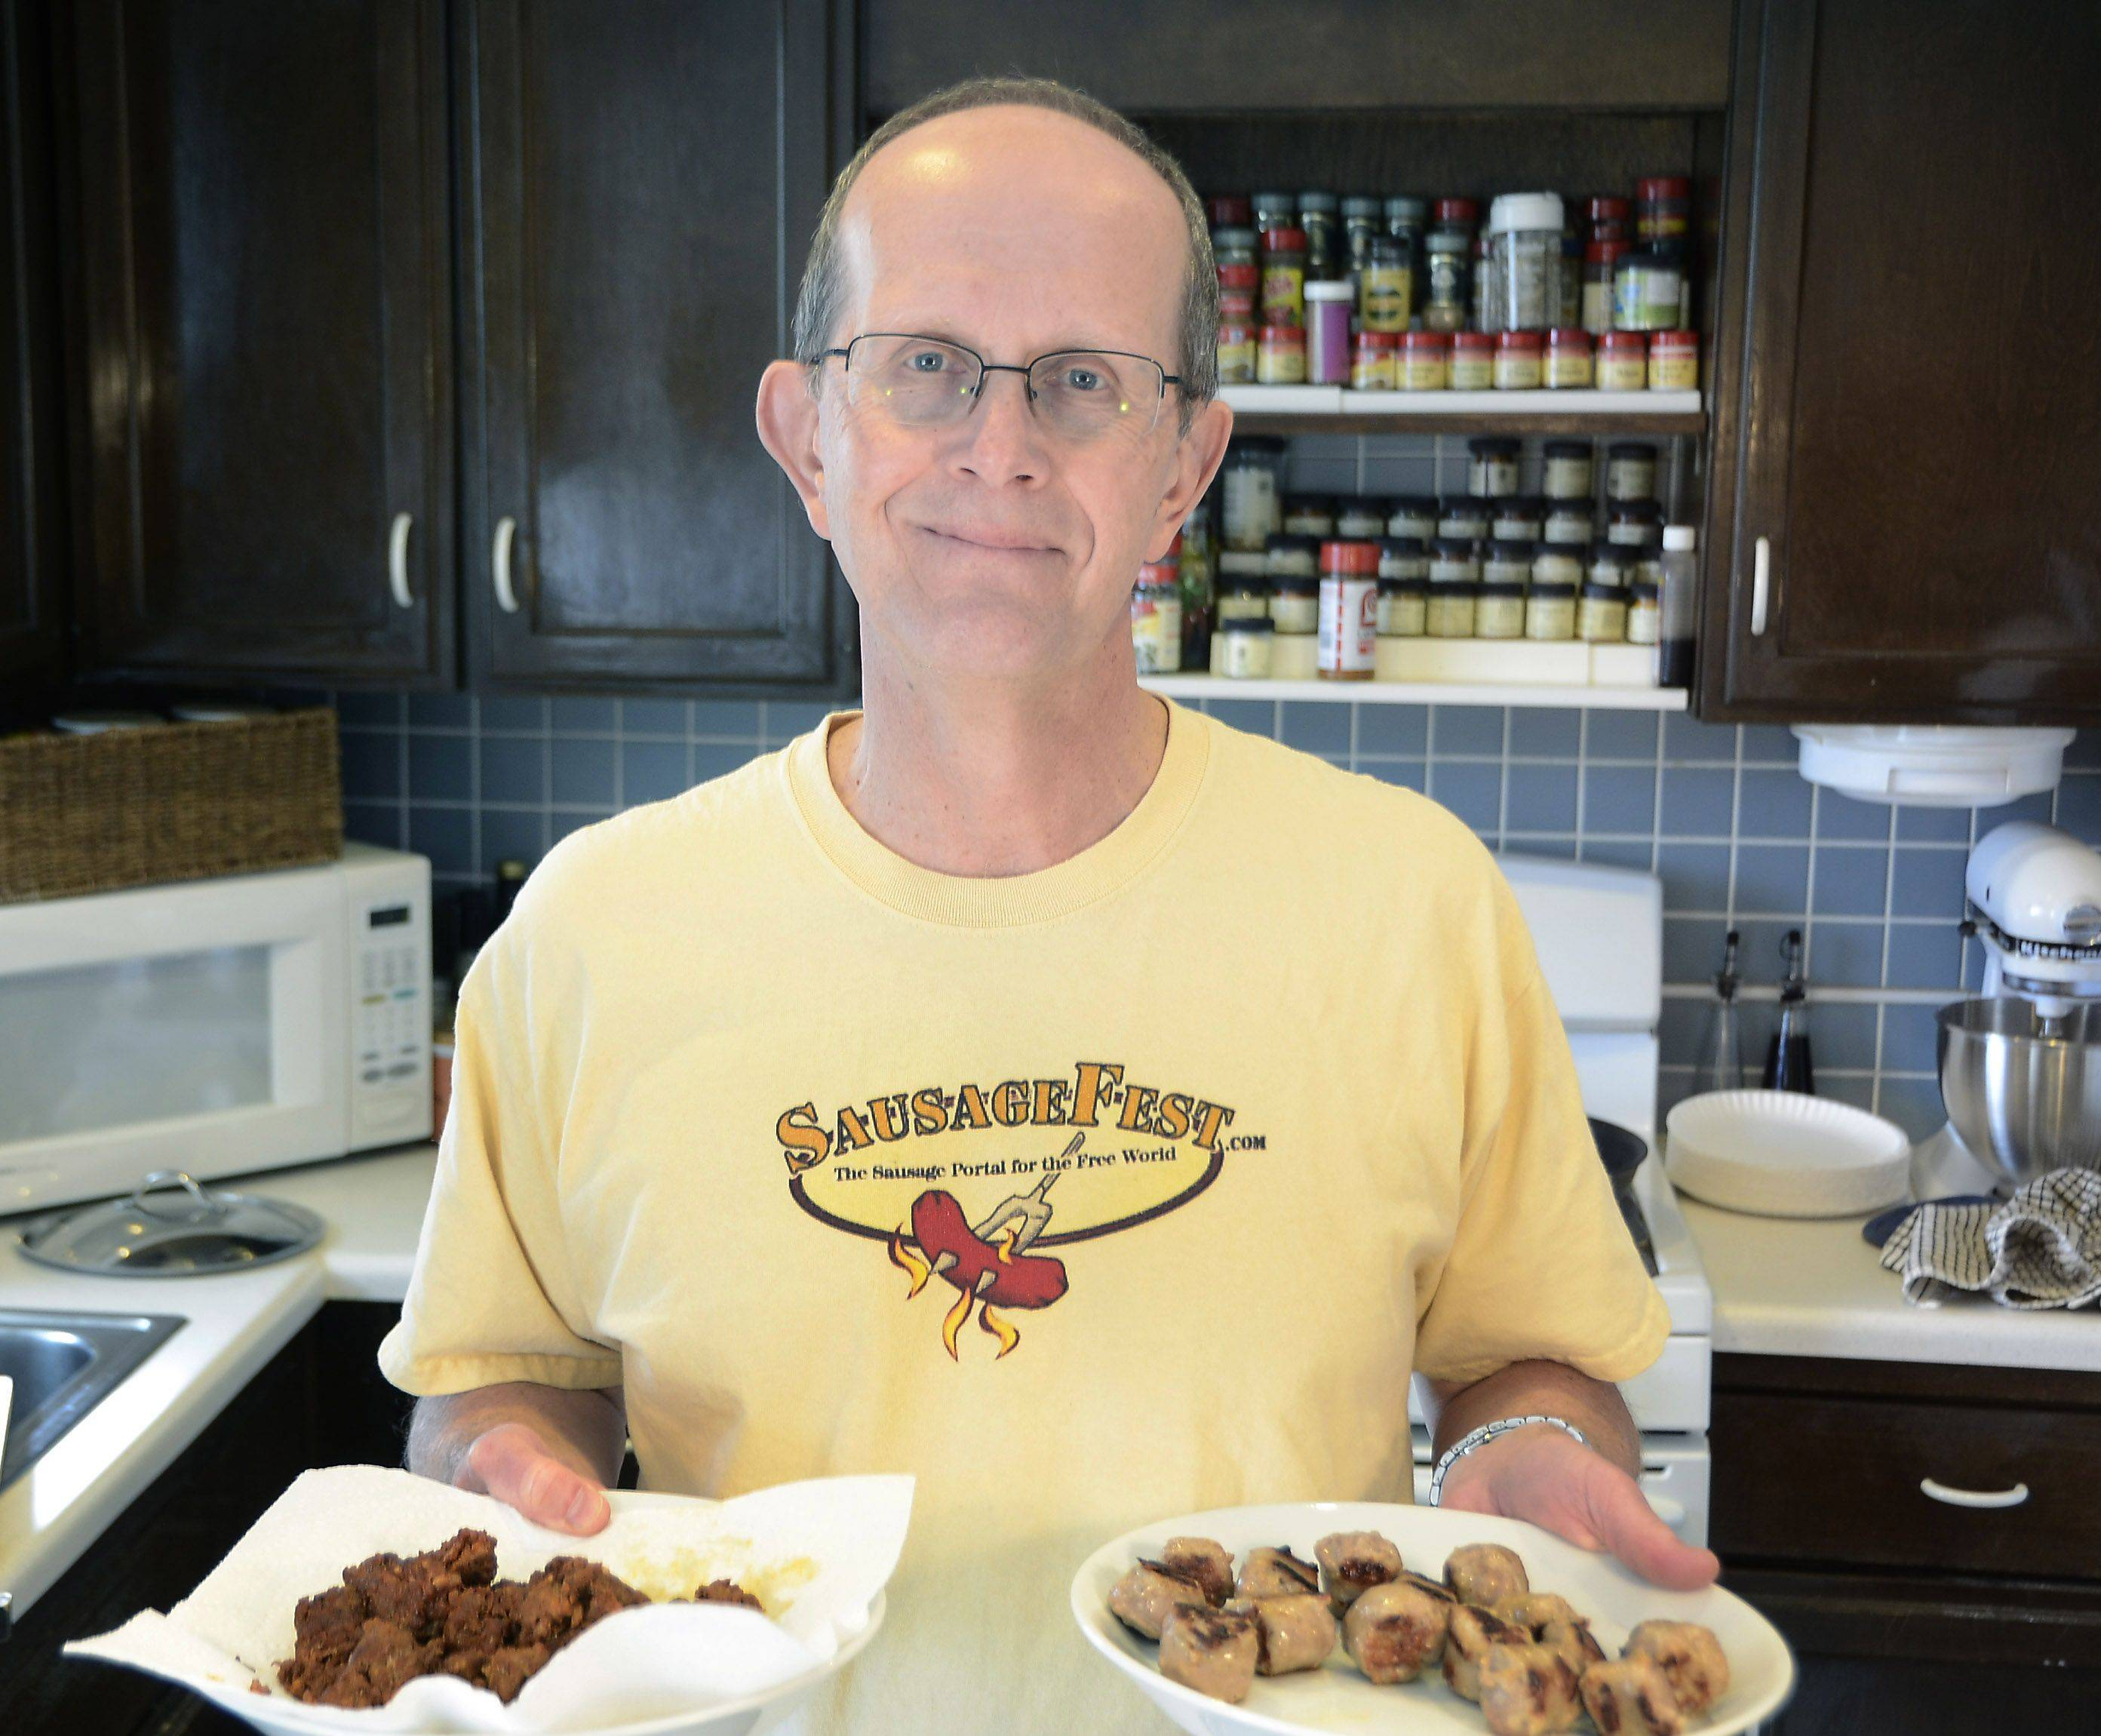 Kent Kleiva of Palatine shares his enthusiasm for encased meats through his annual end-of-summer SausageFest party and his website of the same name.